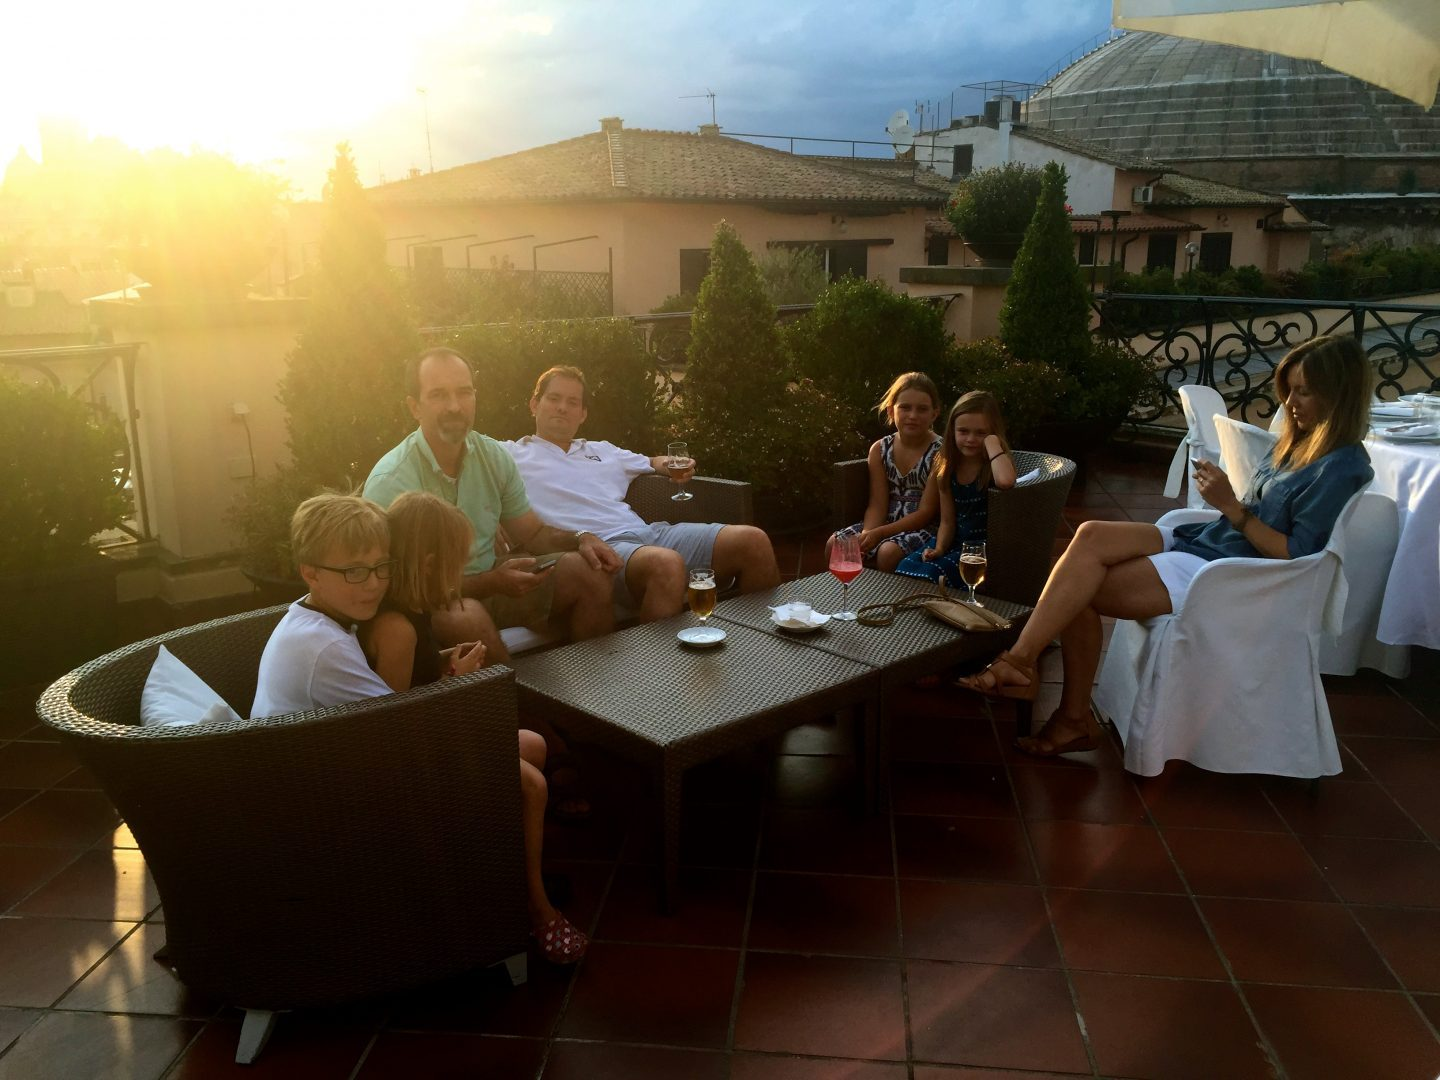 Sunset hour on a rooftop hotel in Rome.